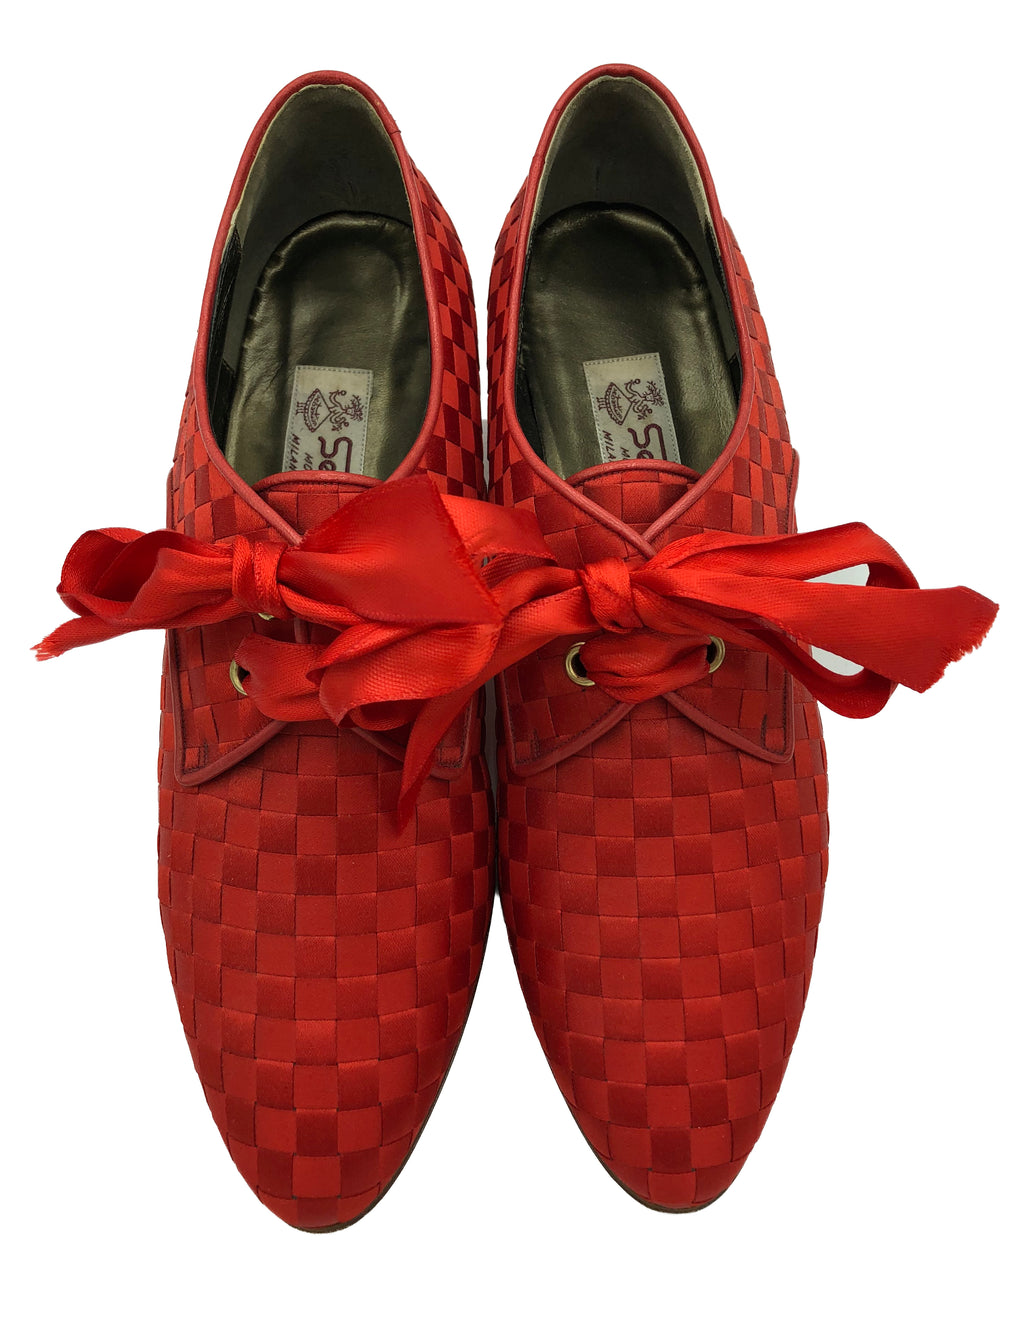 90s Red Ribbon Woven Louis Heeled Oxford Shoes 1 of 5